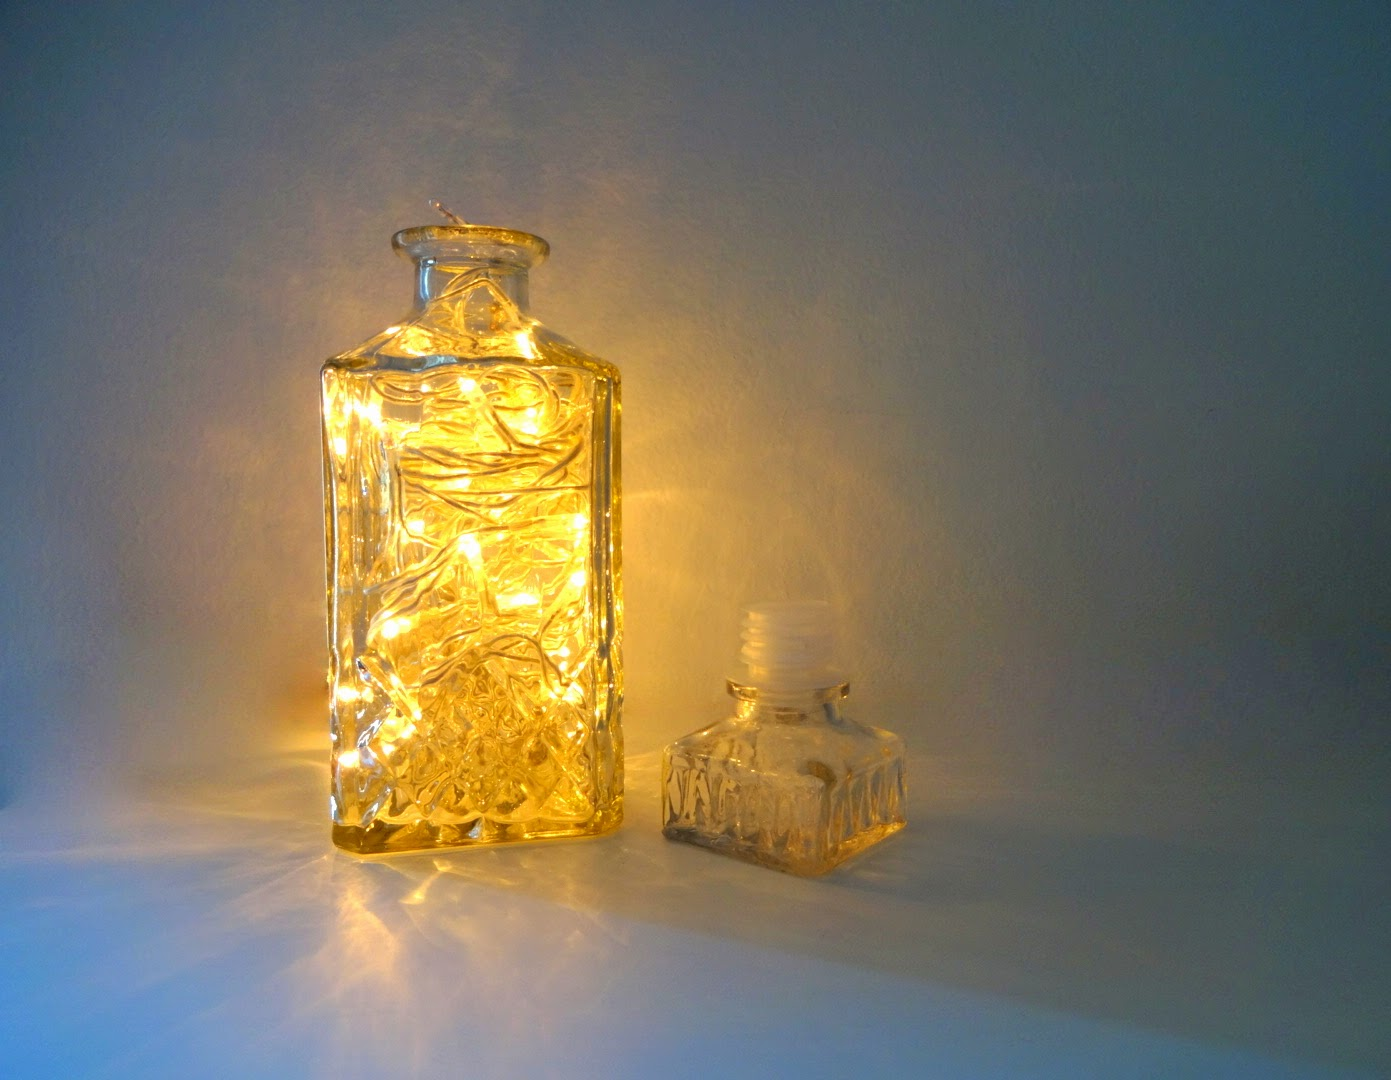 home decor, shabby chic, bottle, glass bottle, whiskey bottle, christmas light, jar